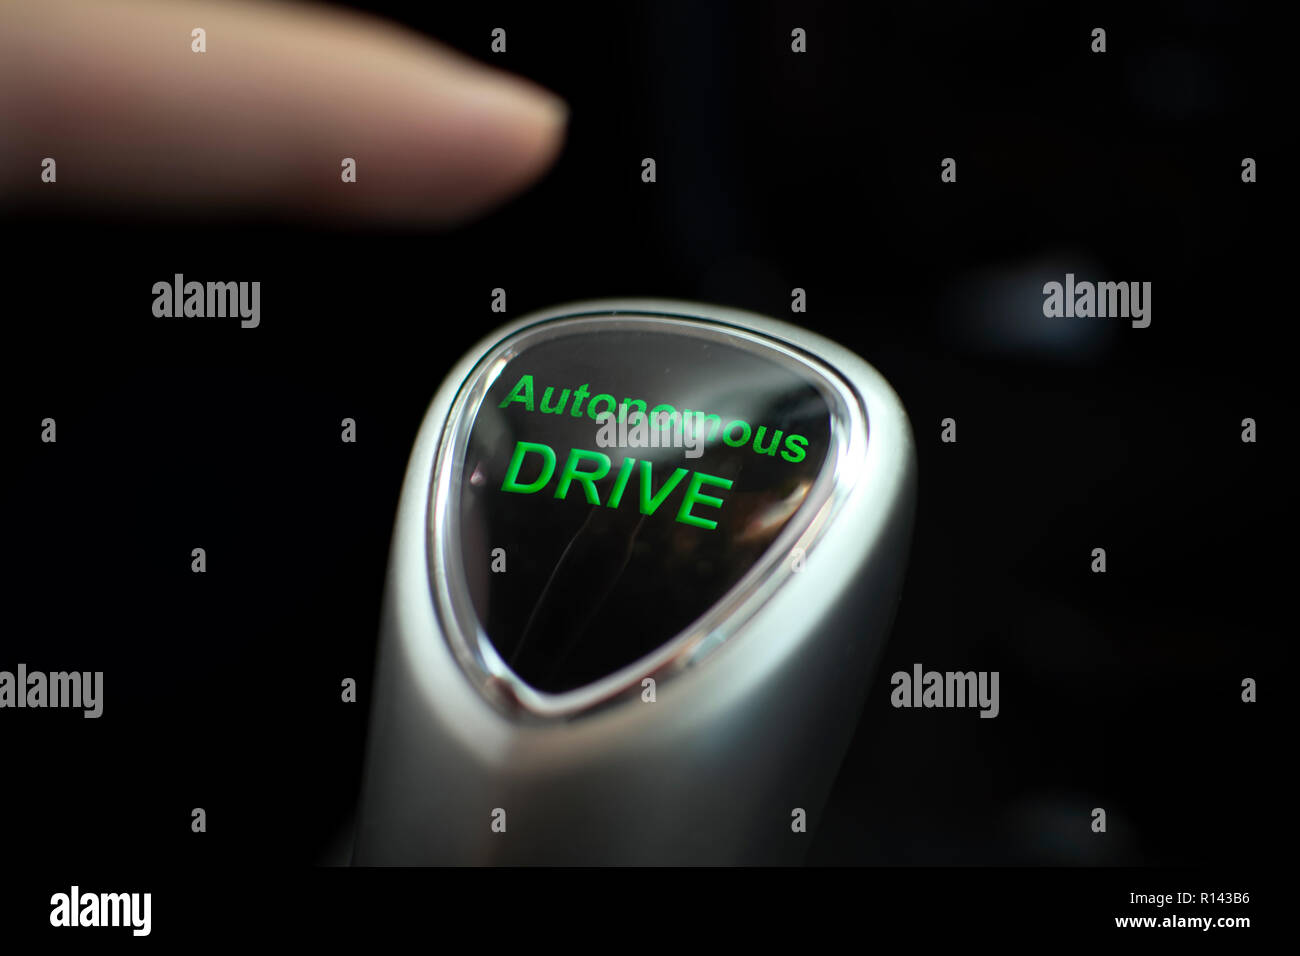 Autonomous drive button in an electric car - Stock Image